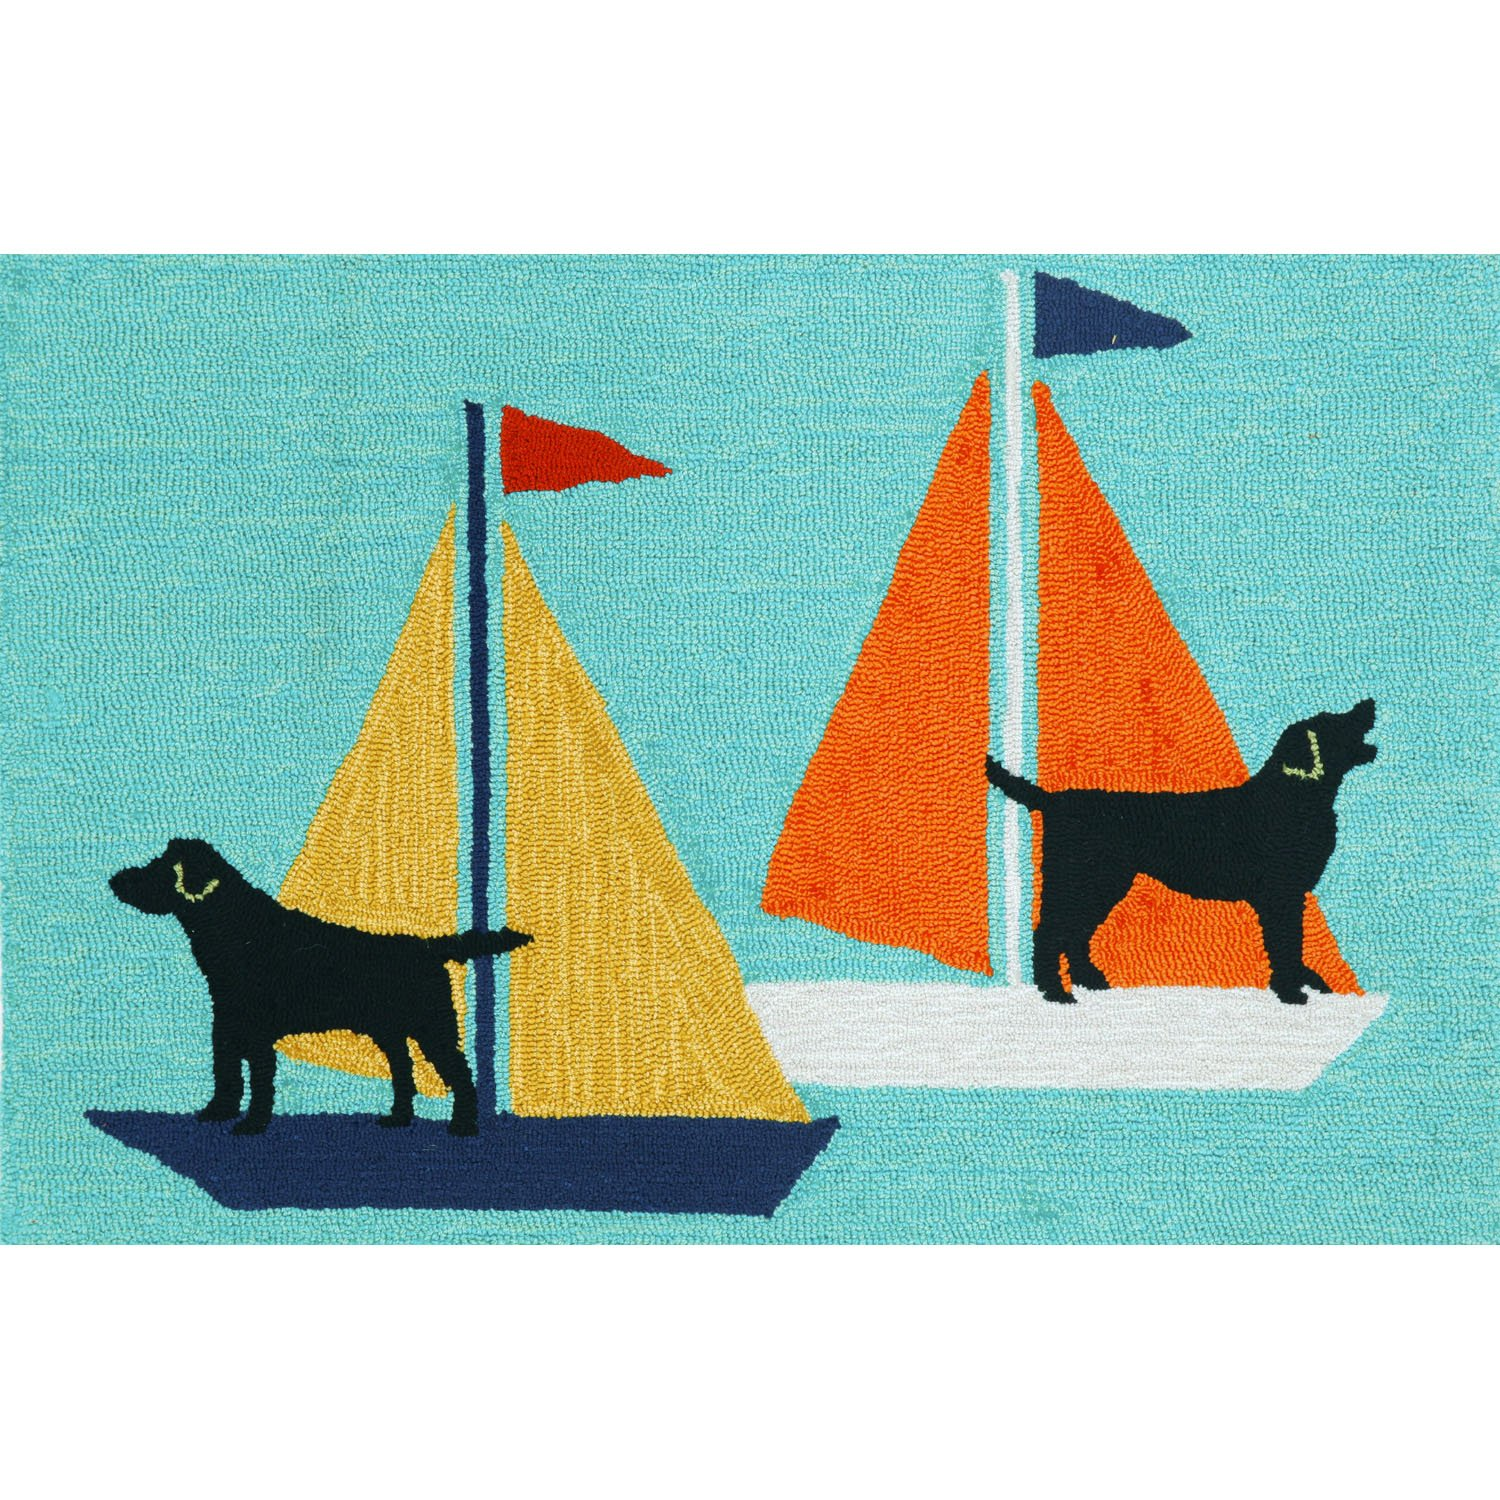 Liora Manne FT123A49903 Whimsy Boat Dog Rug, 24x 36, Blue 24x 36 The Trans Ocean Group